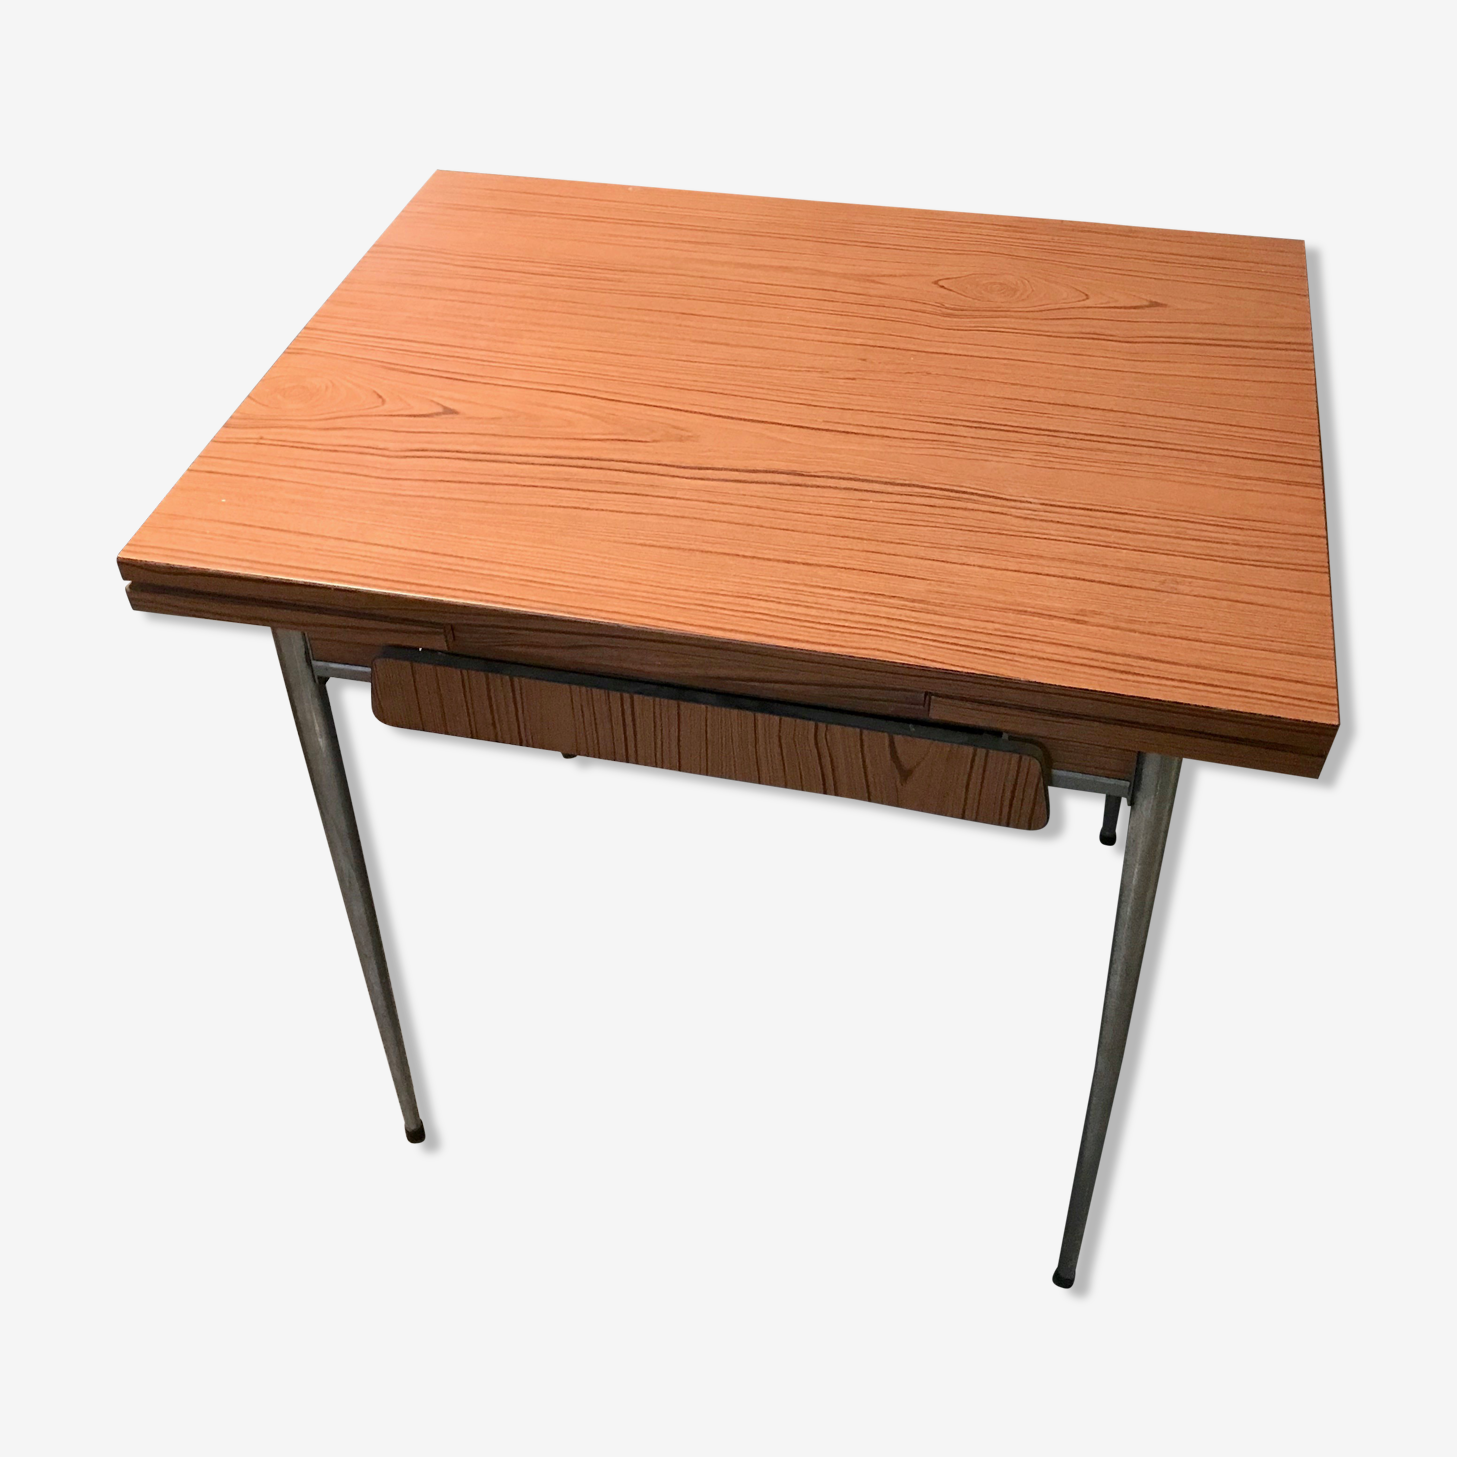 Table en formica marron